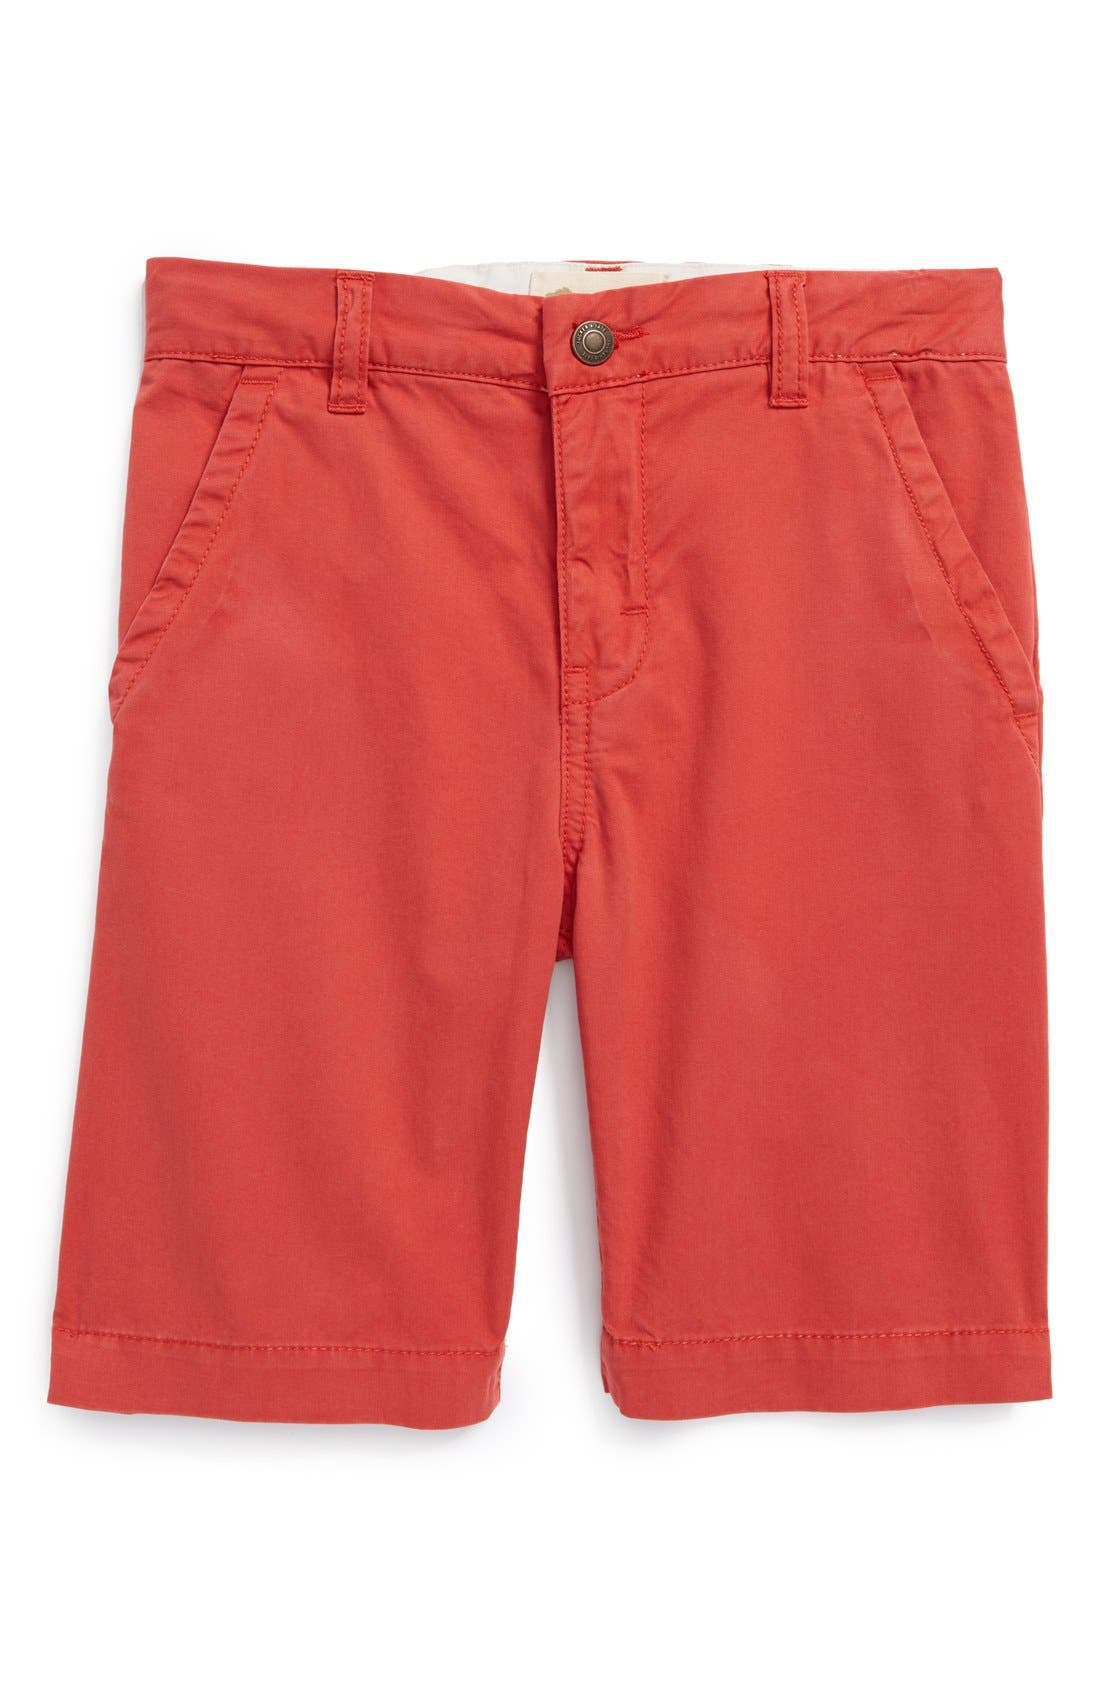 Main Image - Tucker + Tate 'Stunt' Chino Shorts (Toddler Boys, Little Boys & Big Boys)